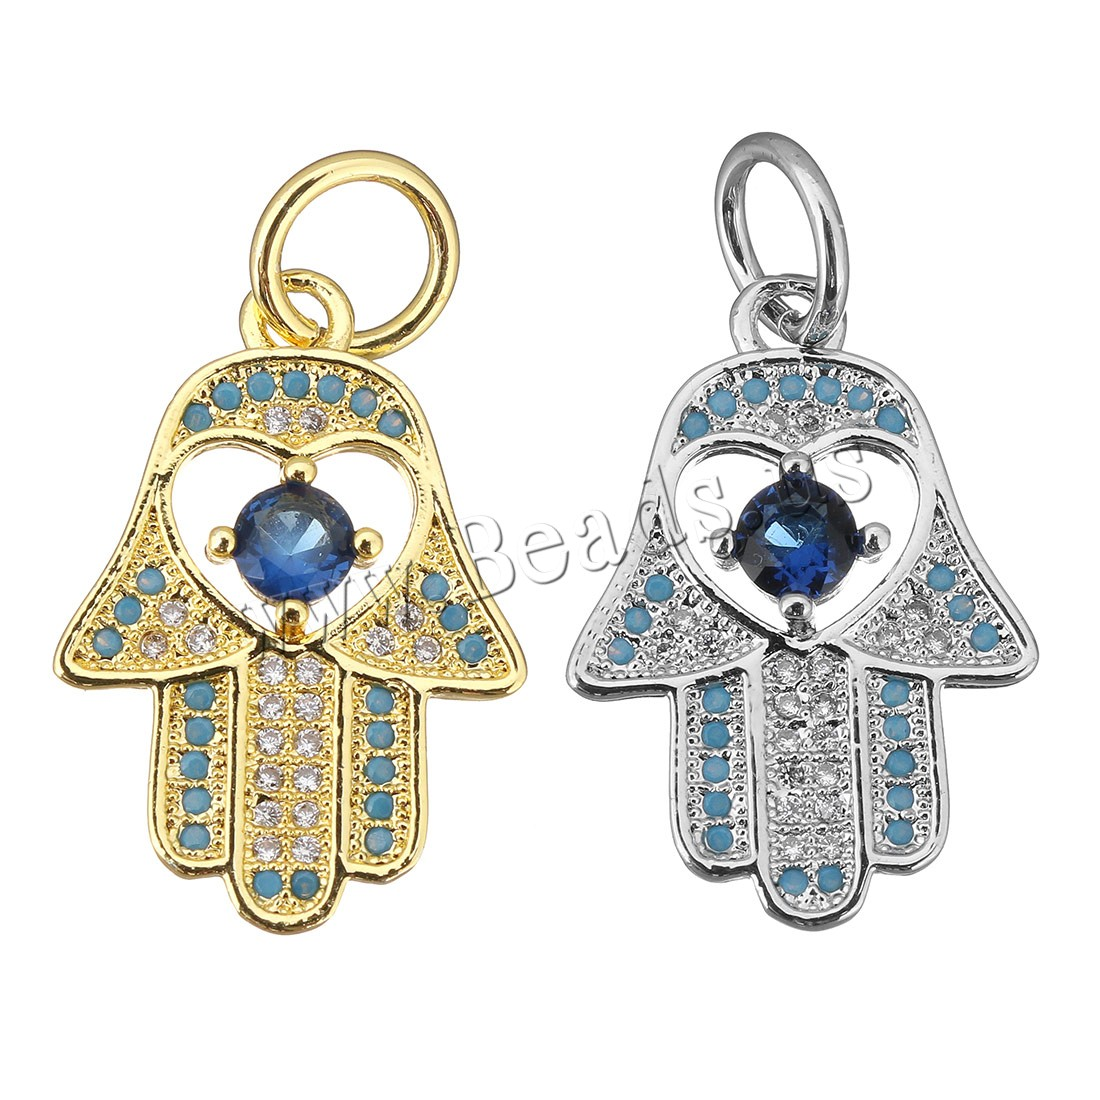 Buy Cubic Zirconia Micro Pave Brass Pendant Hamsa plated micro pave cubic zirconia colors choice 15x22x3mm Hole:Approx 5mm 1 Sold Lot